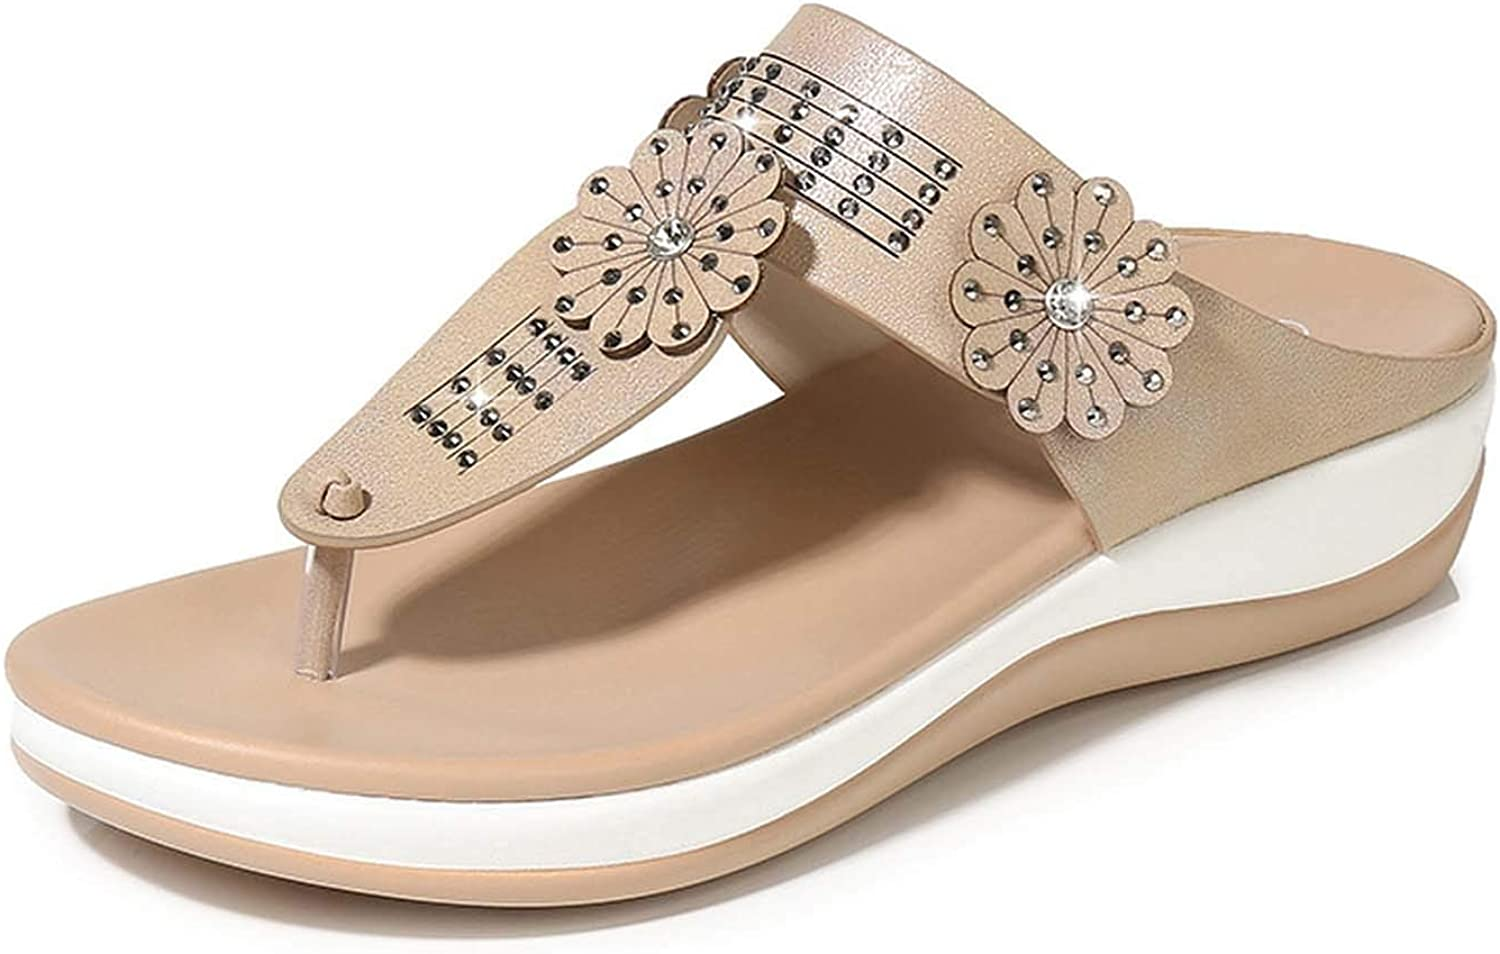 HuangKang Summer shoes Woman Platform Sandals Women Casual Open Toe Gladiator